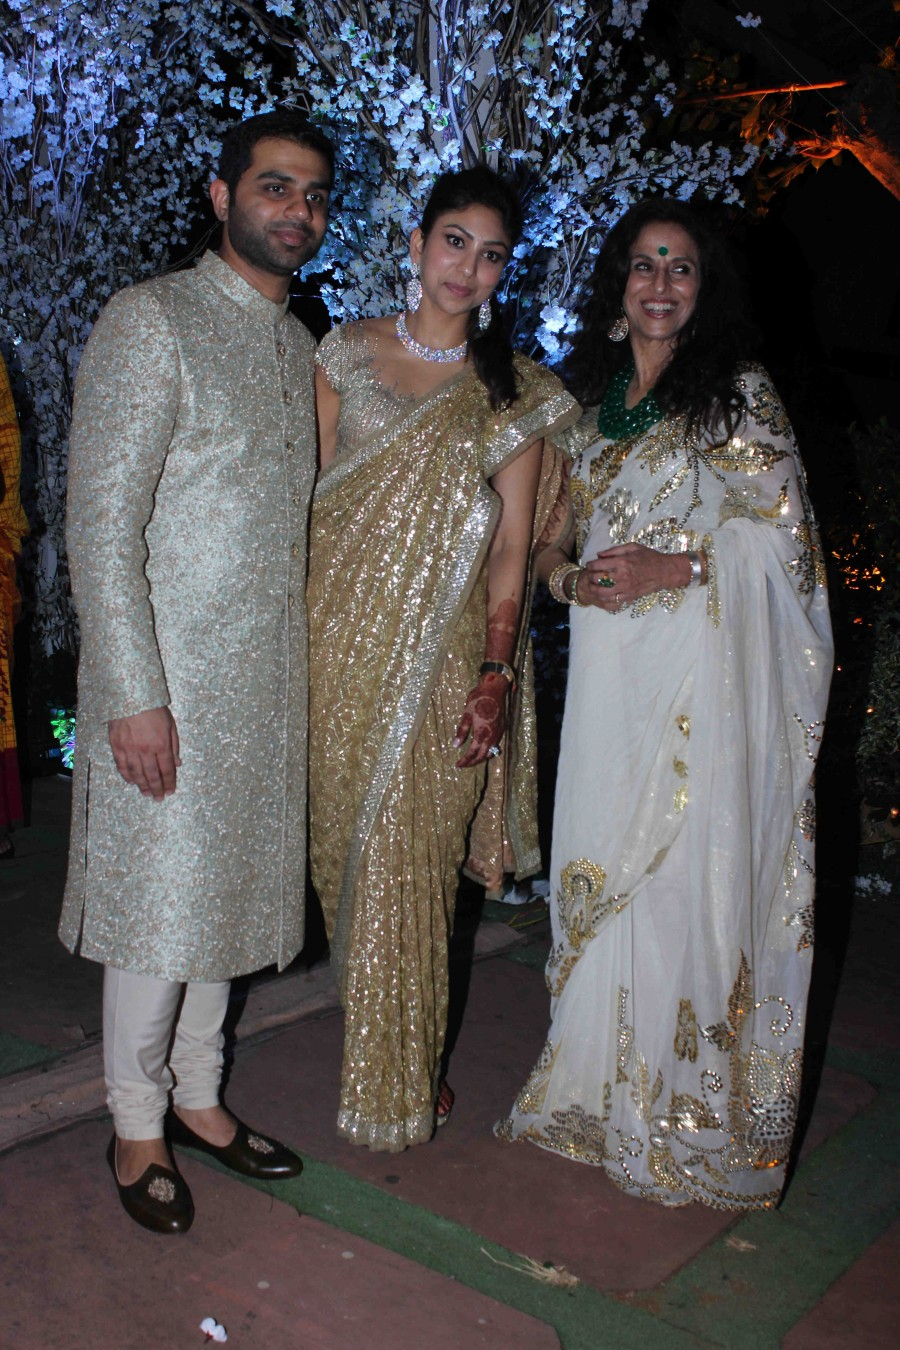 Kangana Ranaut,actress Kangana Ranaut,Arundhati De and Sahil Seth wedding reception,Arundhati De wedding reception,Sahil Seth wedding reception,wedding reception,Arundhati De and Sahil Seth wedding,Arundhati De and Sahil Seth marriage,Arundhati De and Sah